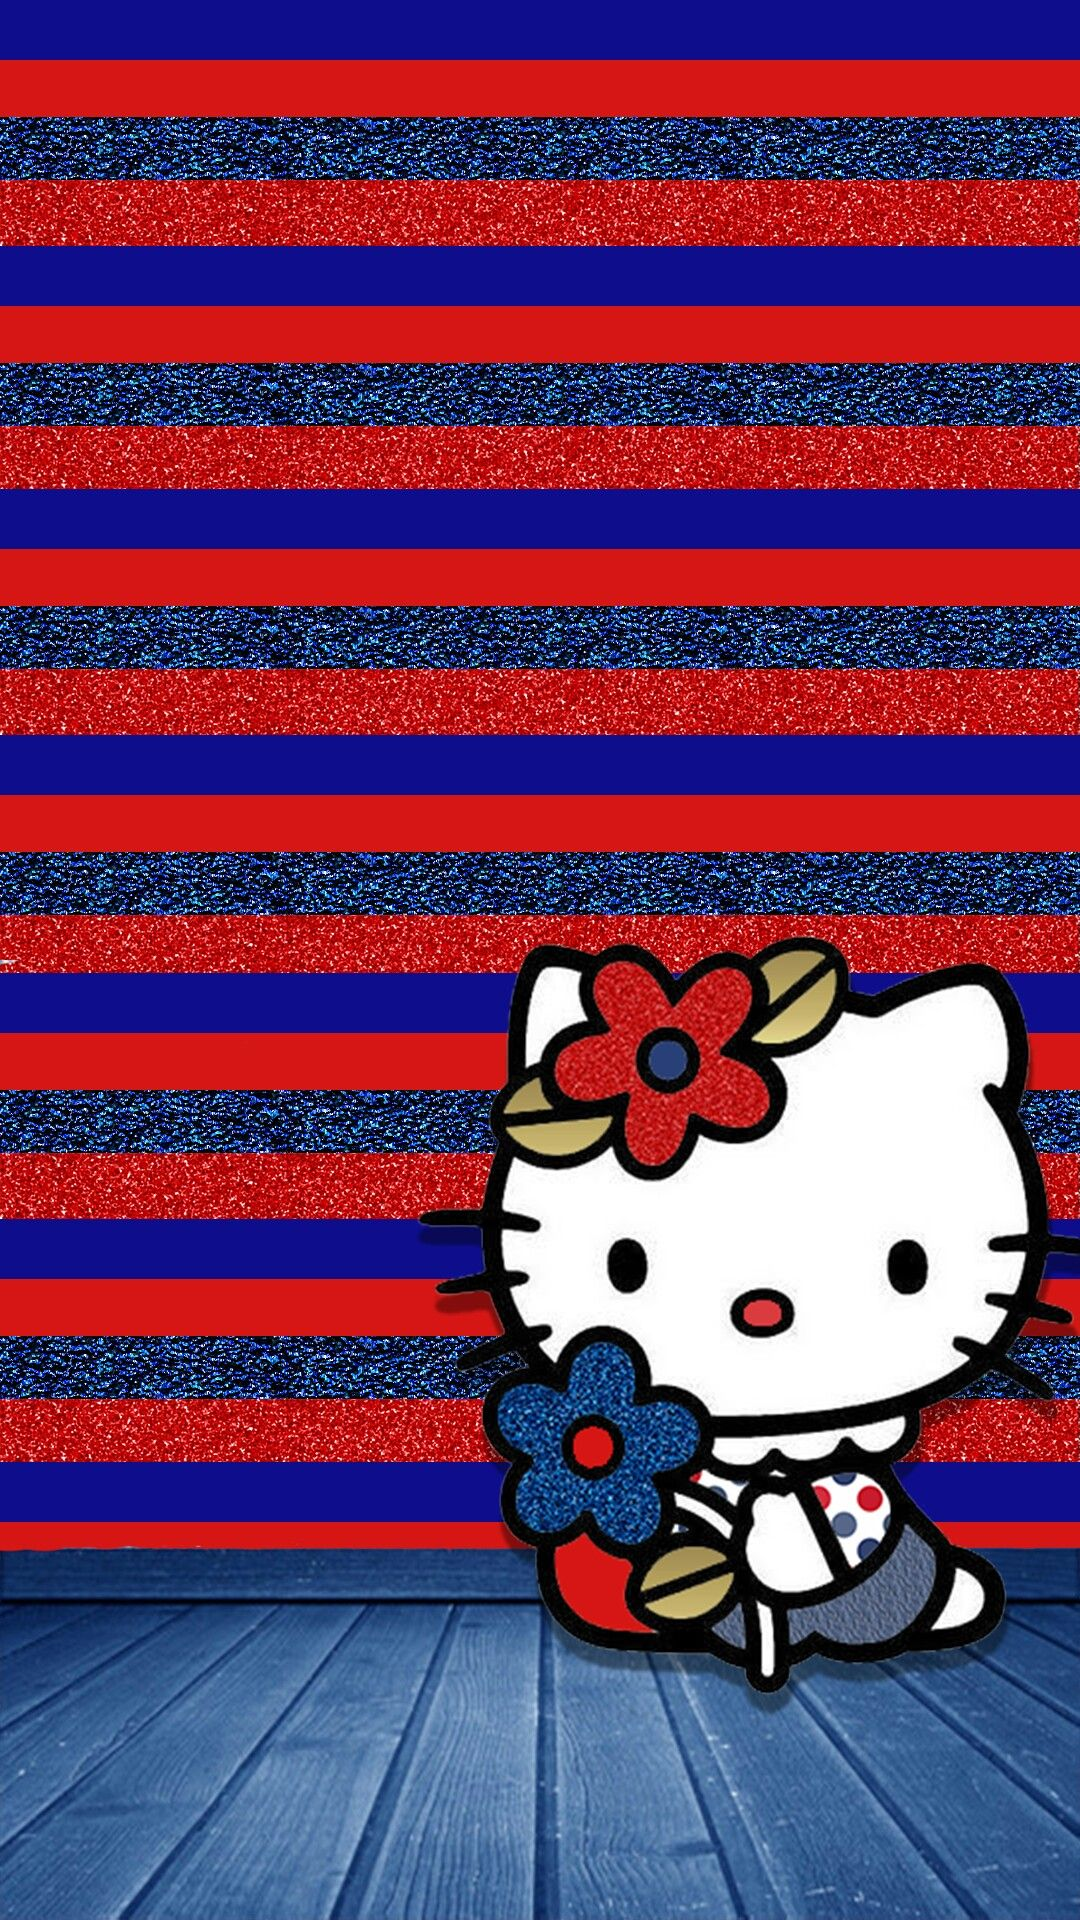 Must see Wallpaper Hello Kitty Smartphone - 3ae69daa1d1e06844ddc956a1c1dd057  Perfect Image Reference_92669.jpg